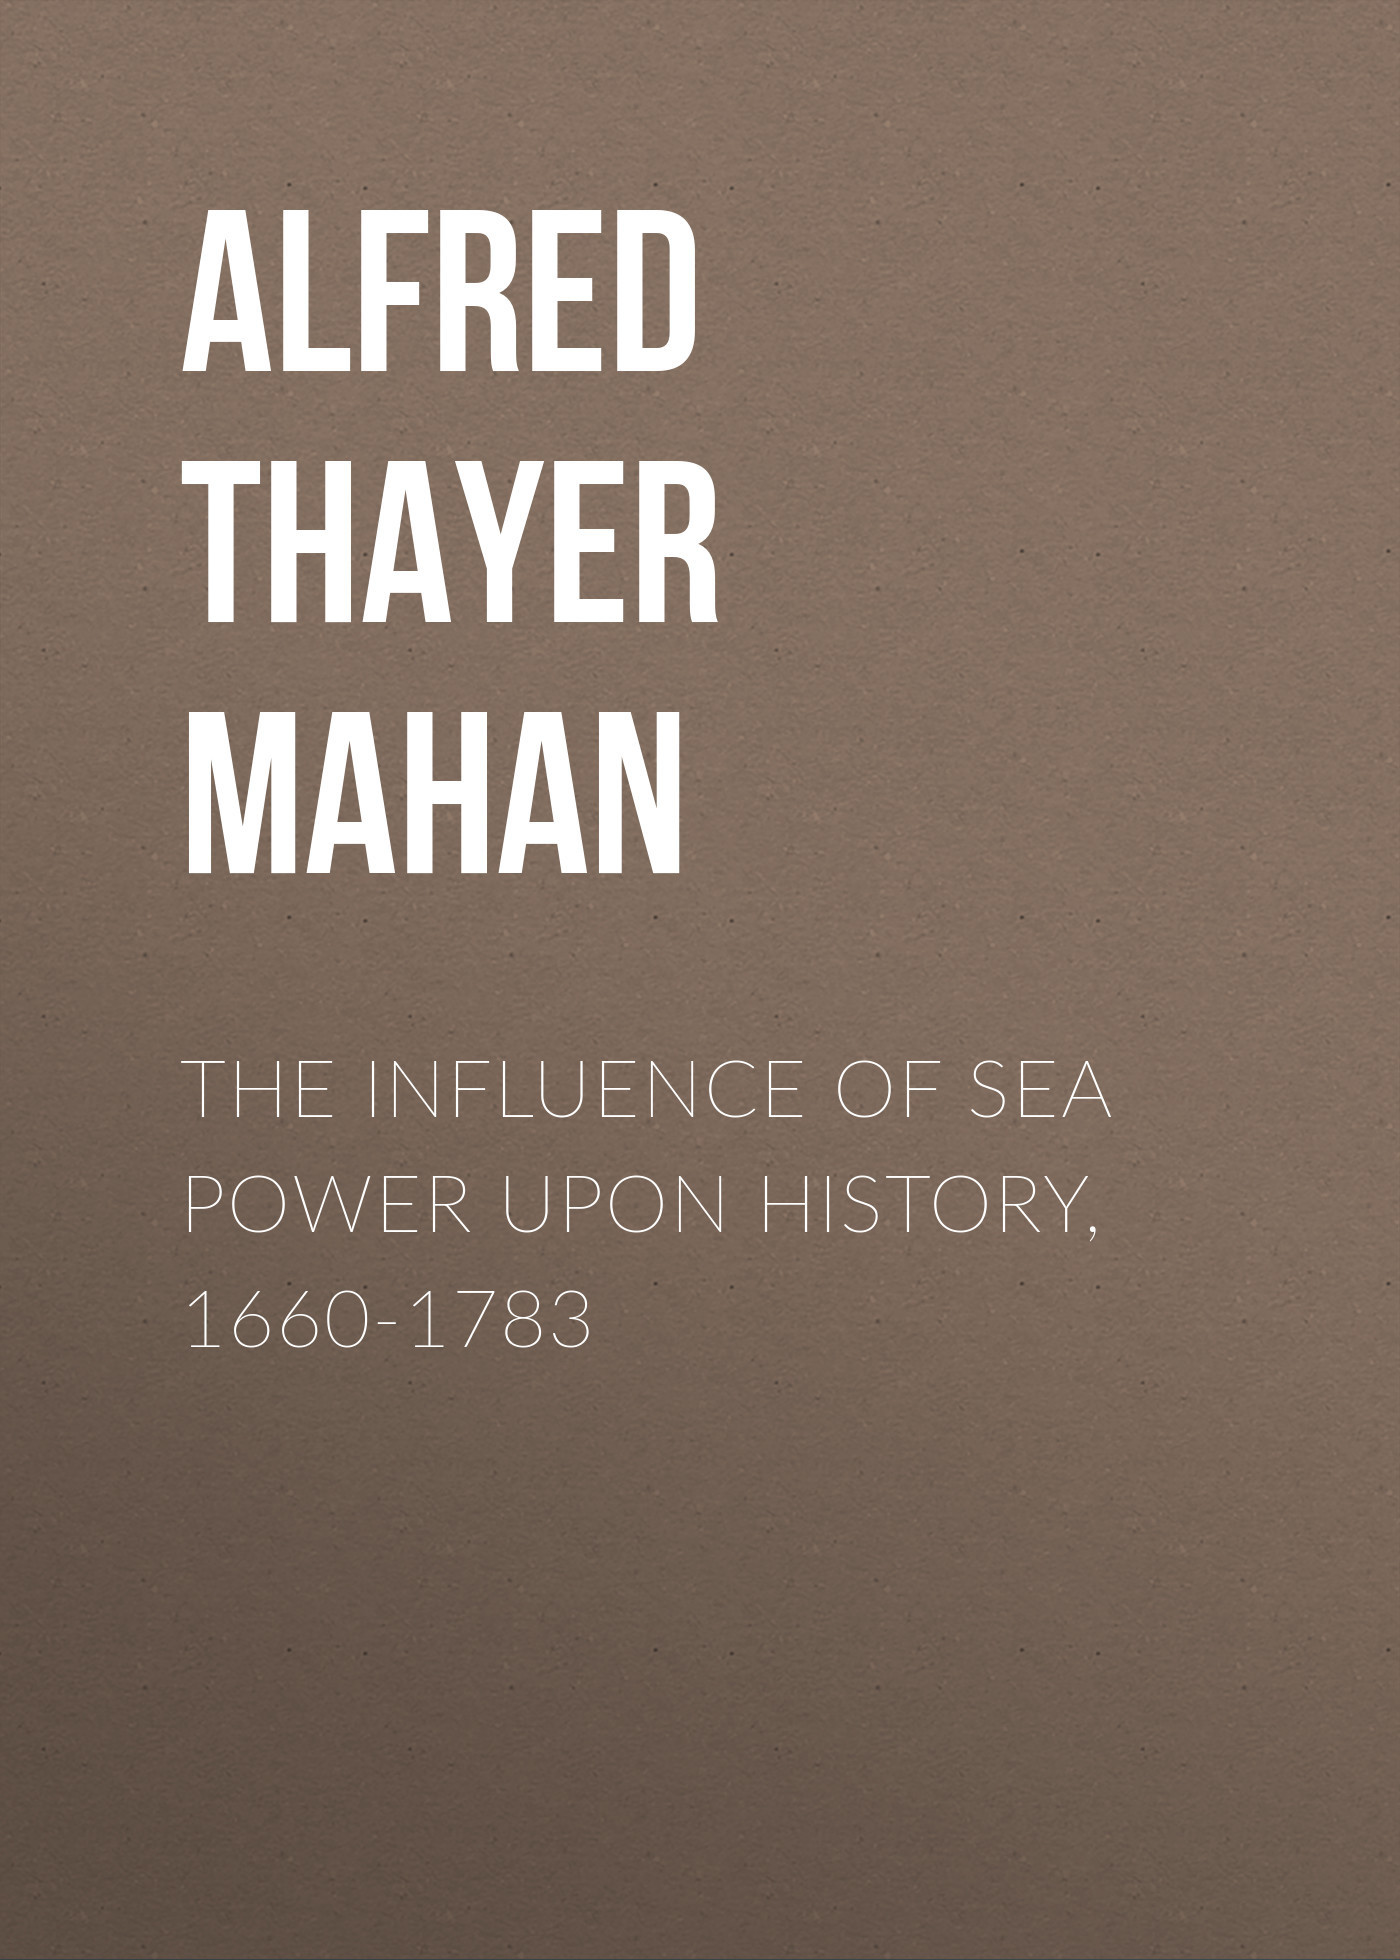 Alfred Thayer Mahan The Influence of Sea Power Upon History, 1660-1783 archon d34vr underwater video diving photography flashlight